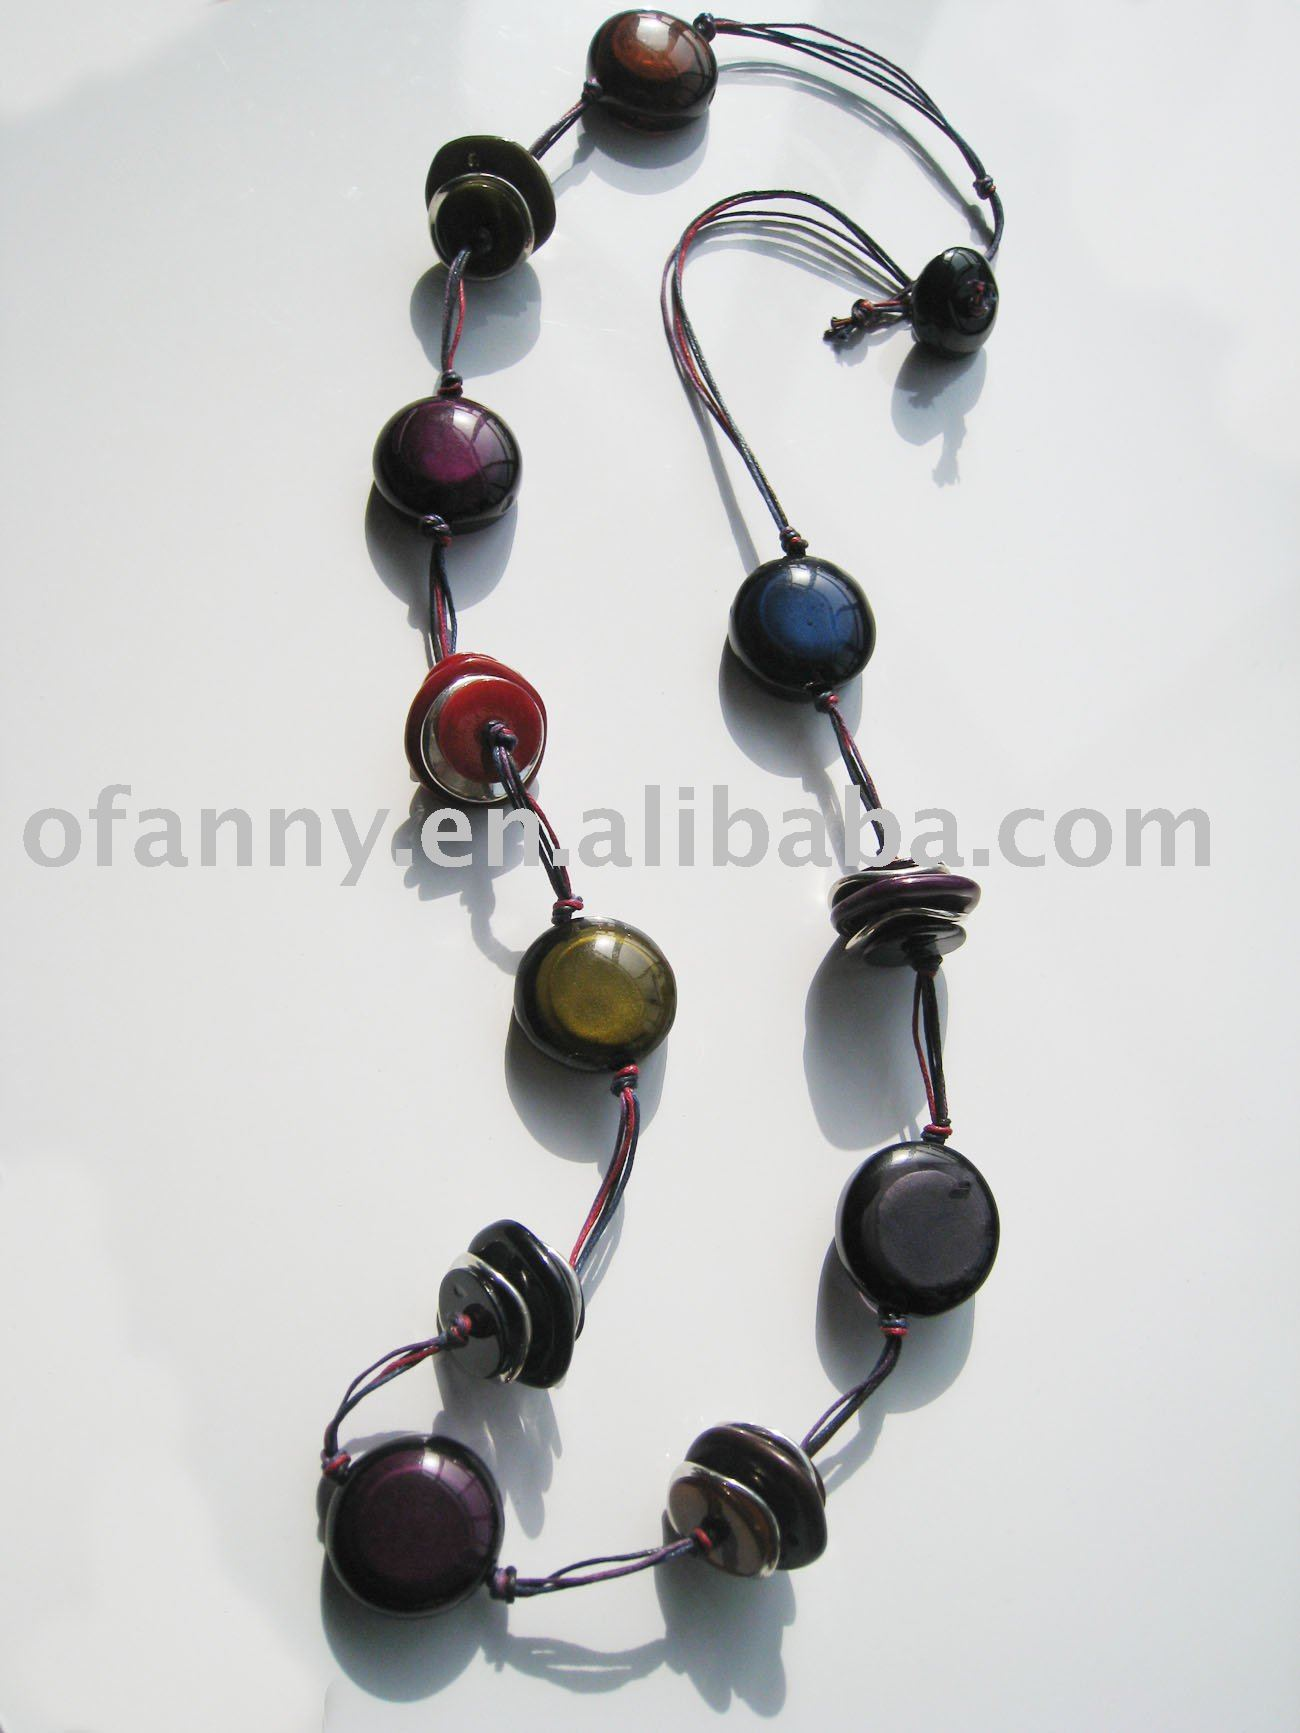 fashion jewelry / resin necklace/ bracelet / earrings/pendant